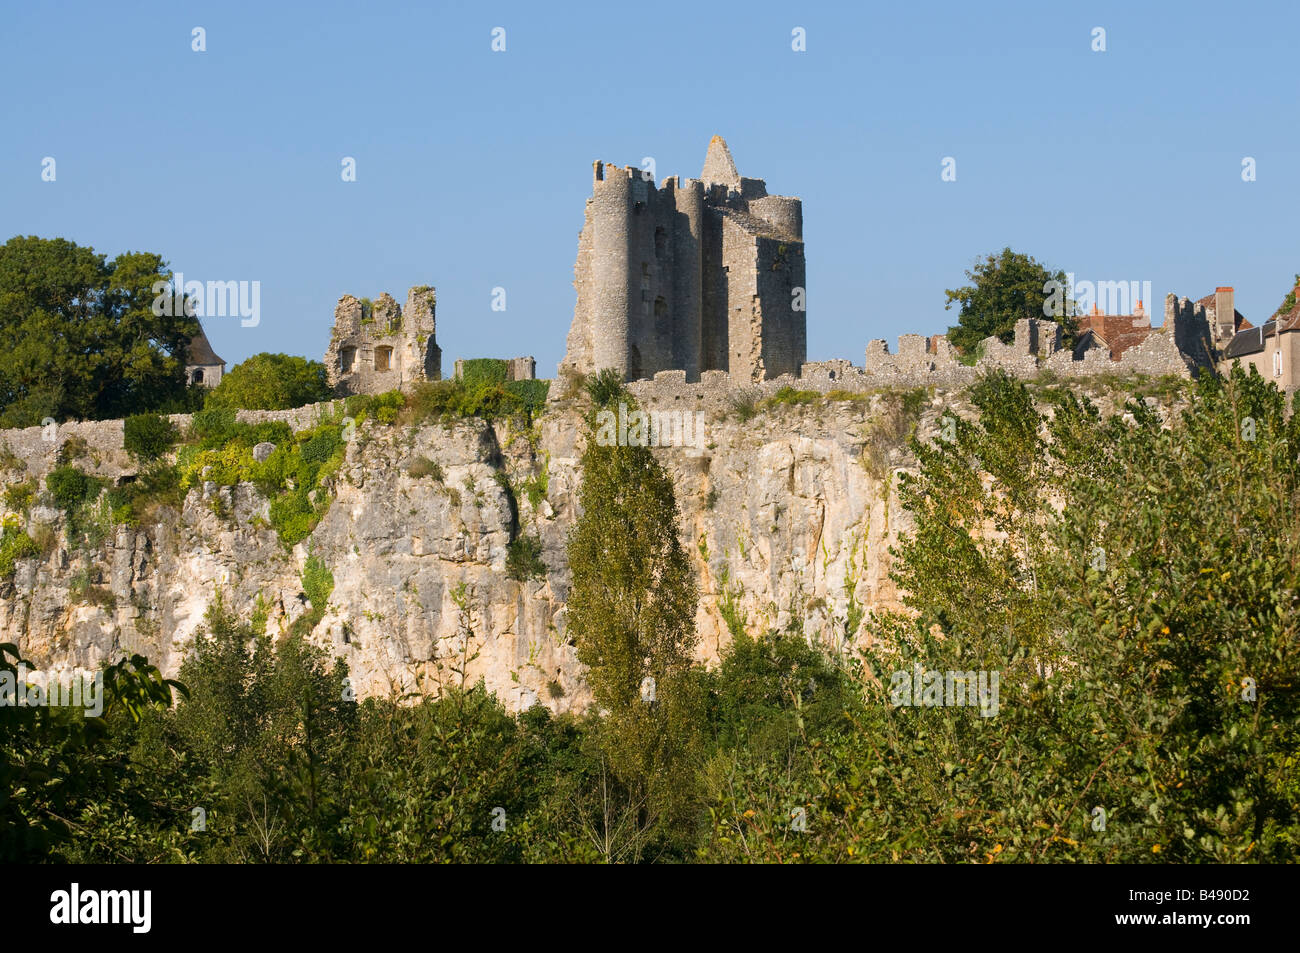 View of ruined chateau, Angles-sur-l'Anglin, Vienne, France. - Stock Image